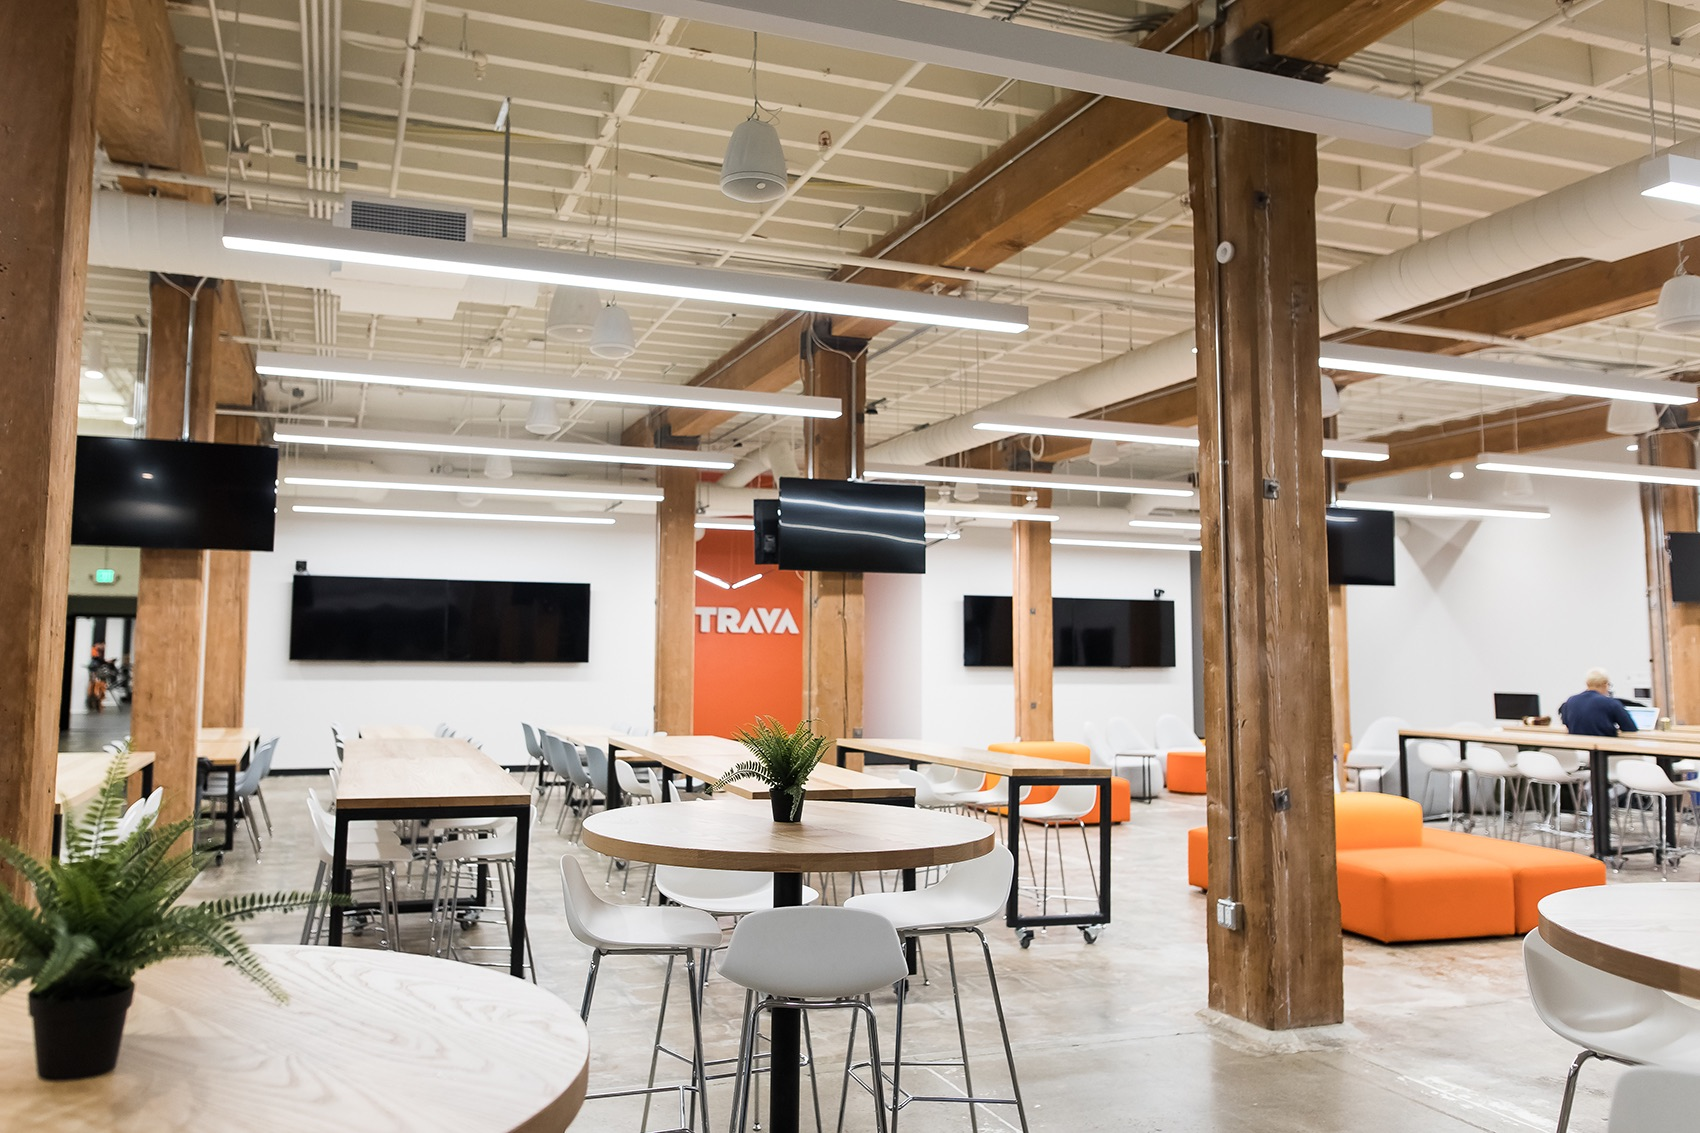 Image result for strava hq